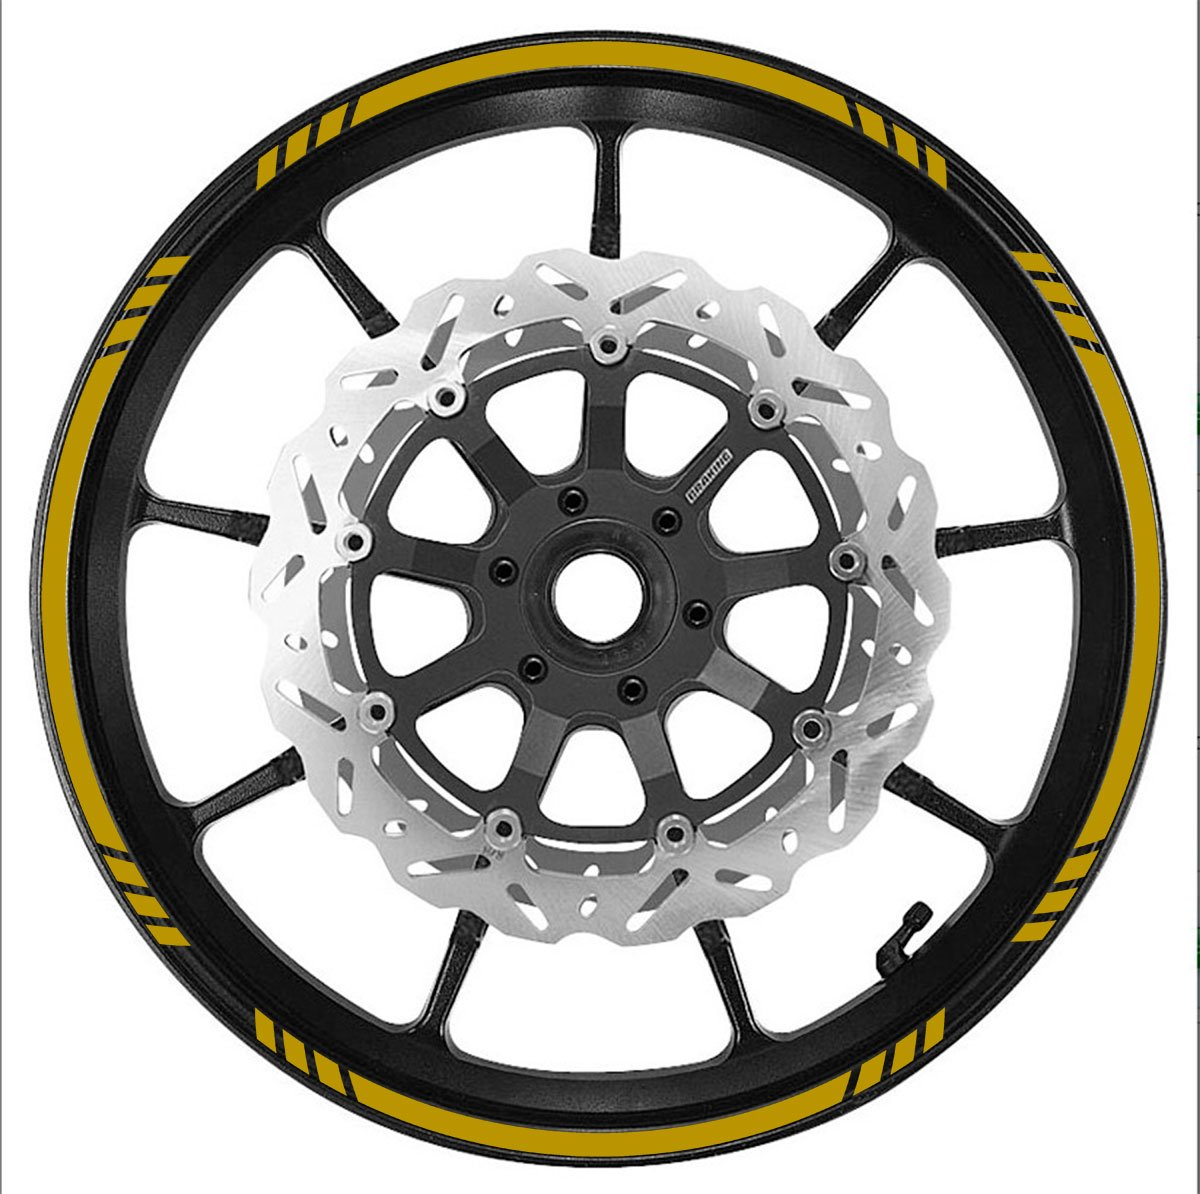 Cars Trucks Vehicleartz Gold Wheel Rim Tape Speed Graduated Stripe fit All Makes of Motorcycles